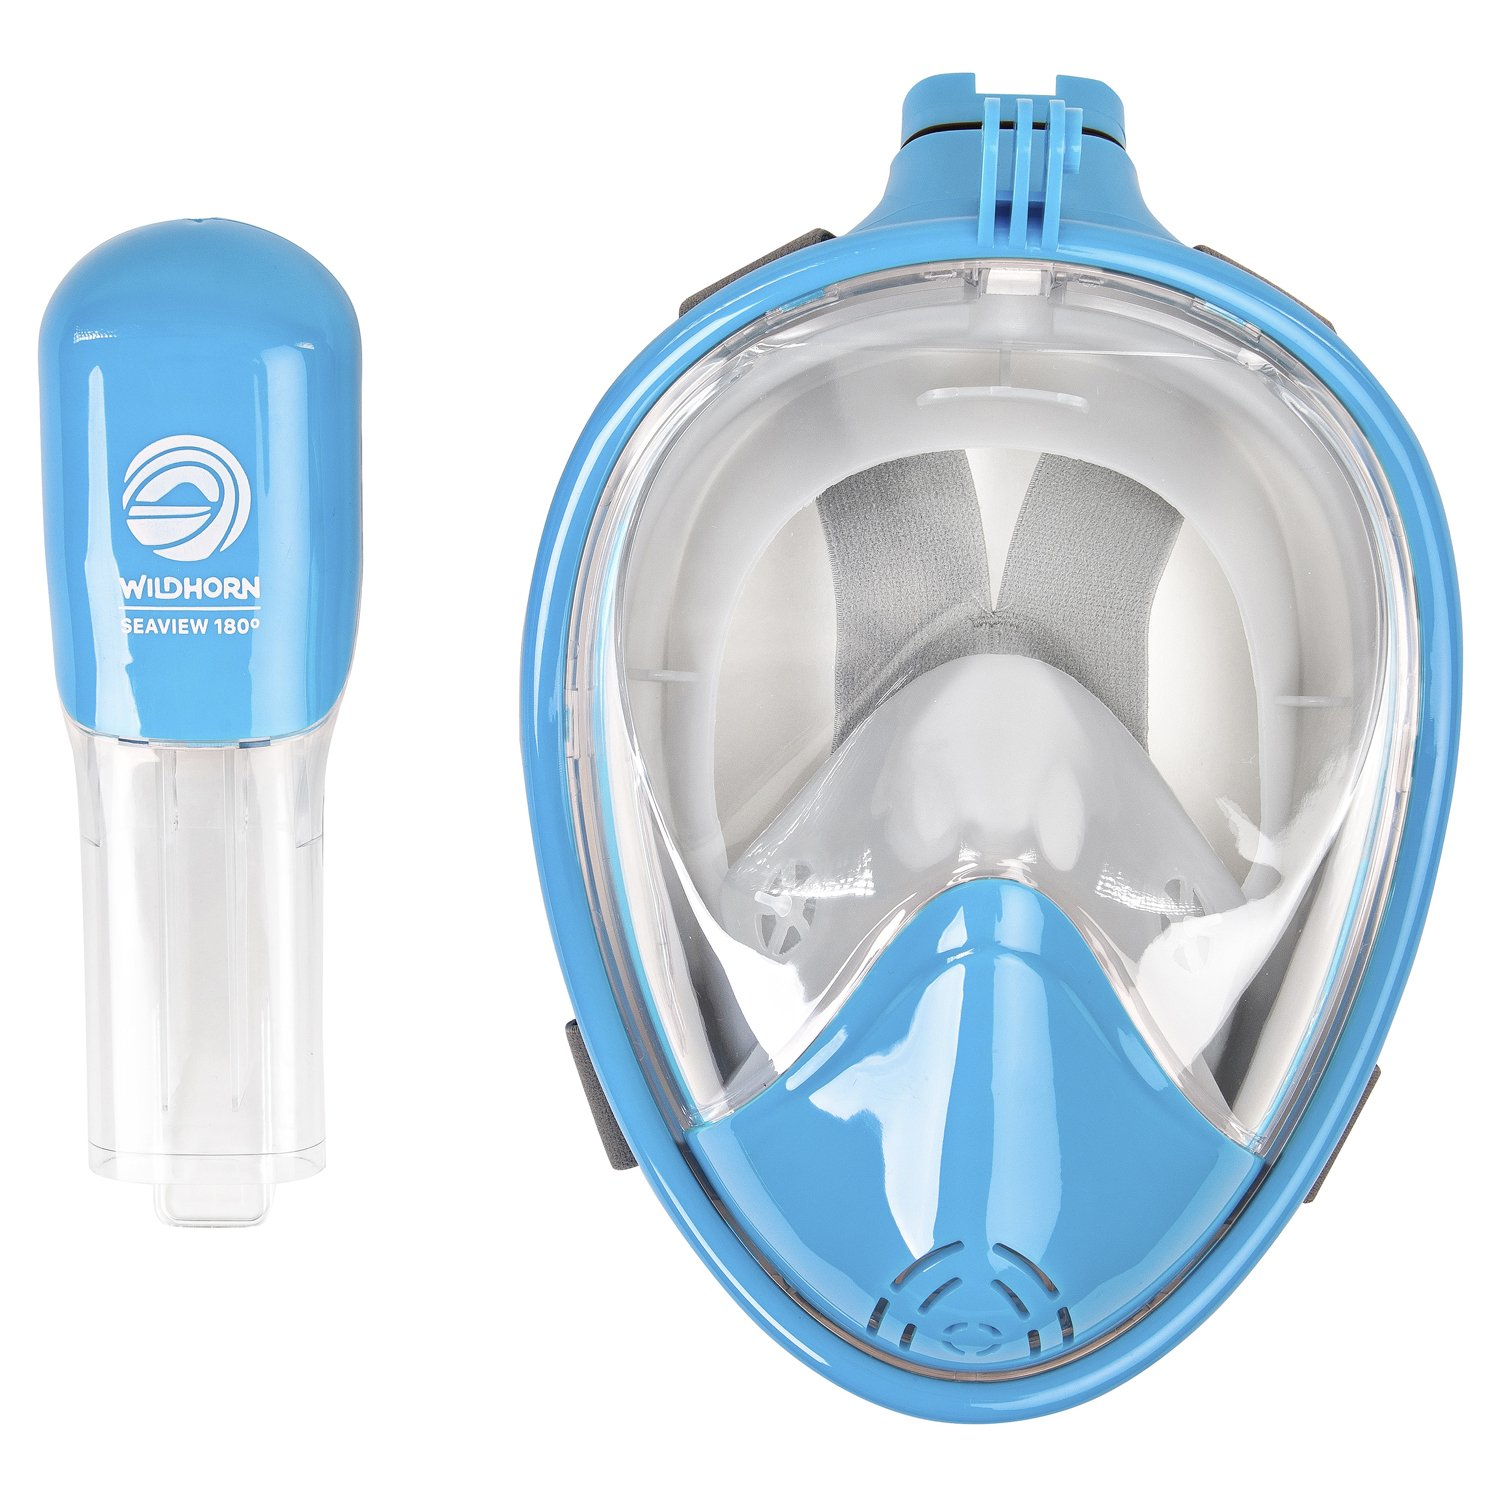 Seaview 180° GoPro Compatible Snorkel Mask- Panoramic Full Face Design. See More With Larger Viewing Area Than Traditional Masks. Prevents Gag Reflex with Tubeless Design (Aqua, S/M) by WildHorn Outfitters (Image #8)